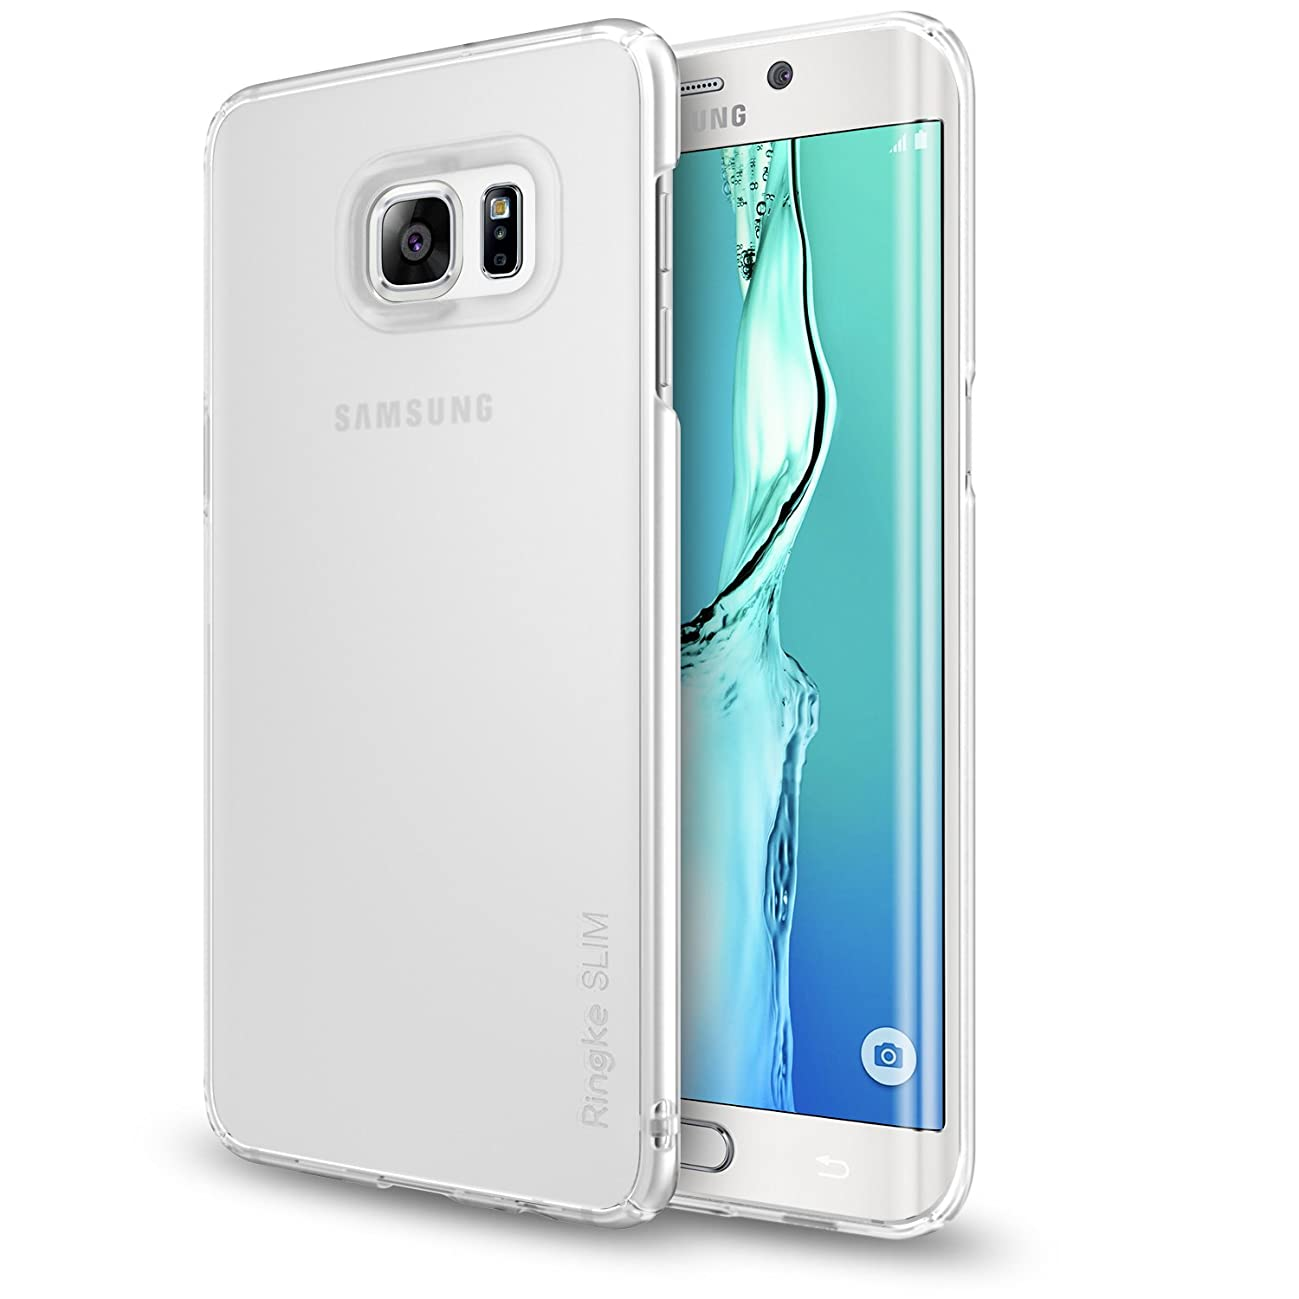 Galaxy S6 Edge Plus Case, Ringke [Slim] Lightweight & Thin Cover [Soft Tone Color] Perfect Slim Translucent Lightweight Hard Skin for Samsung Galaxy S6 Edge Plus - Frost White